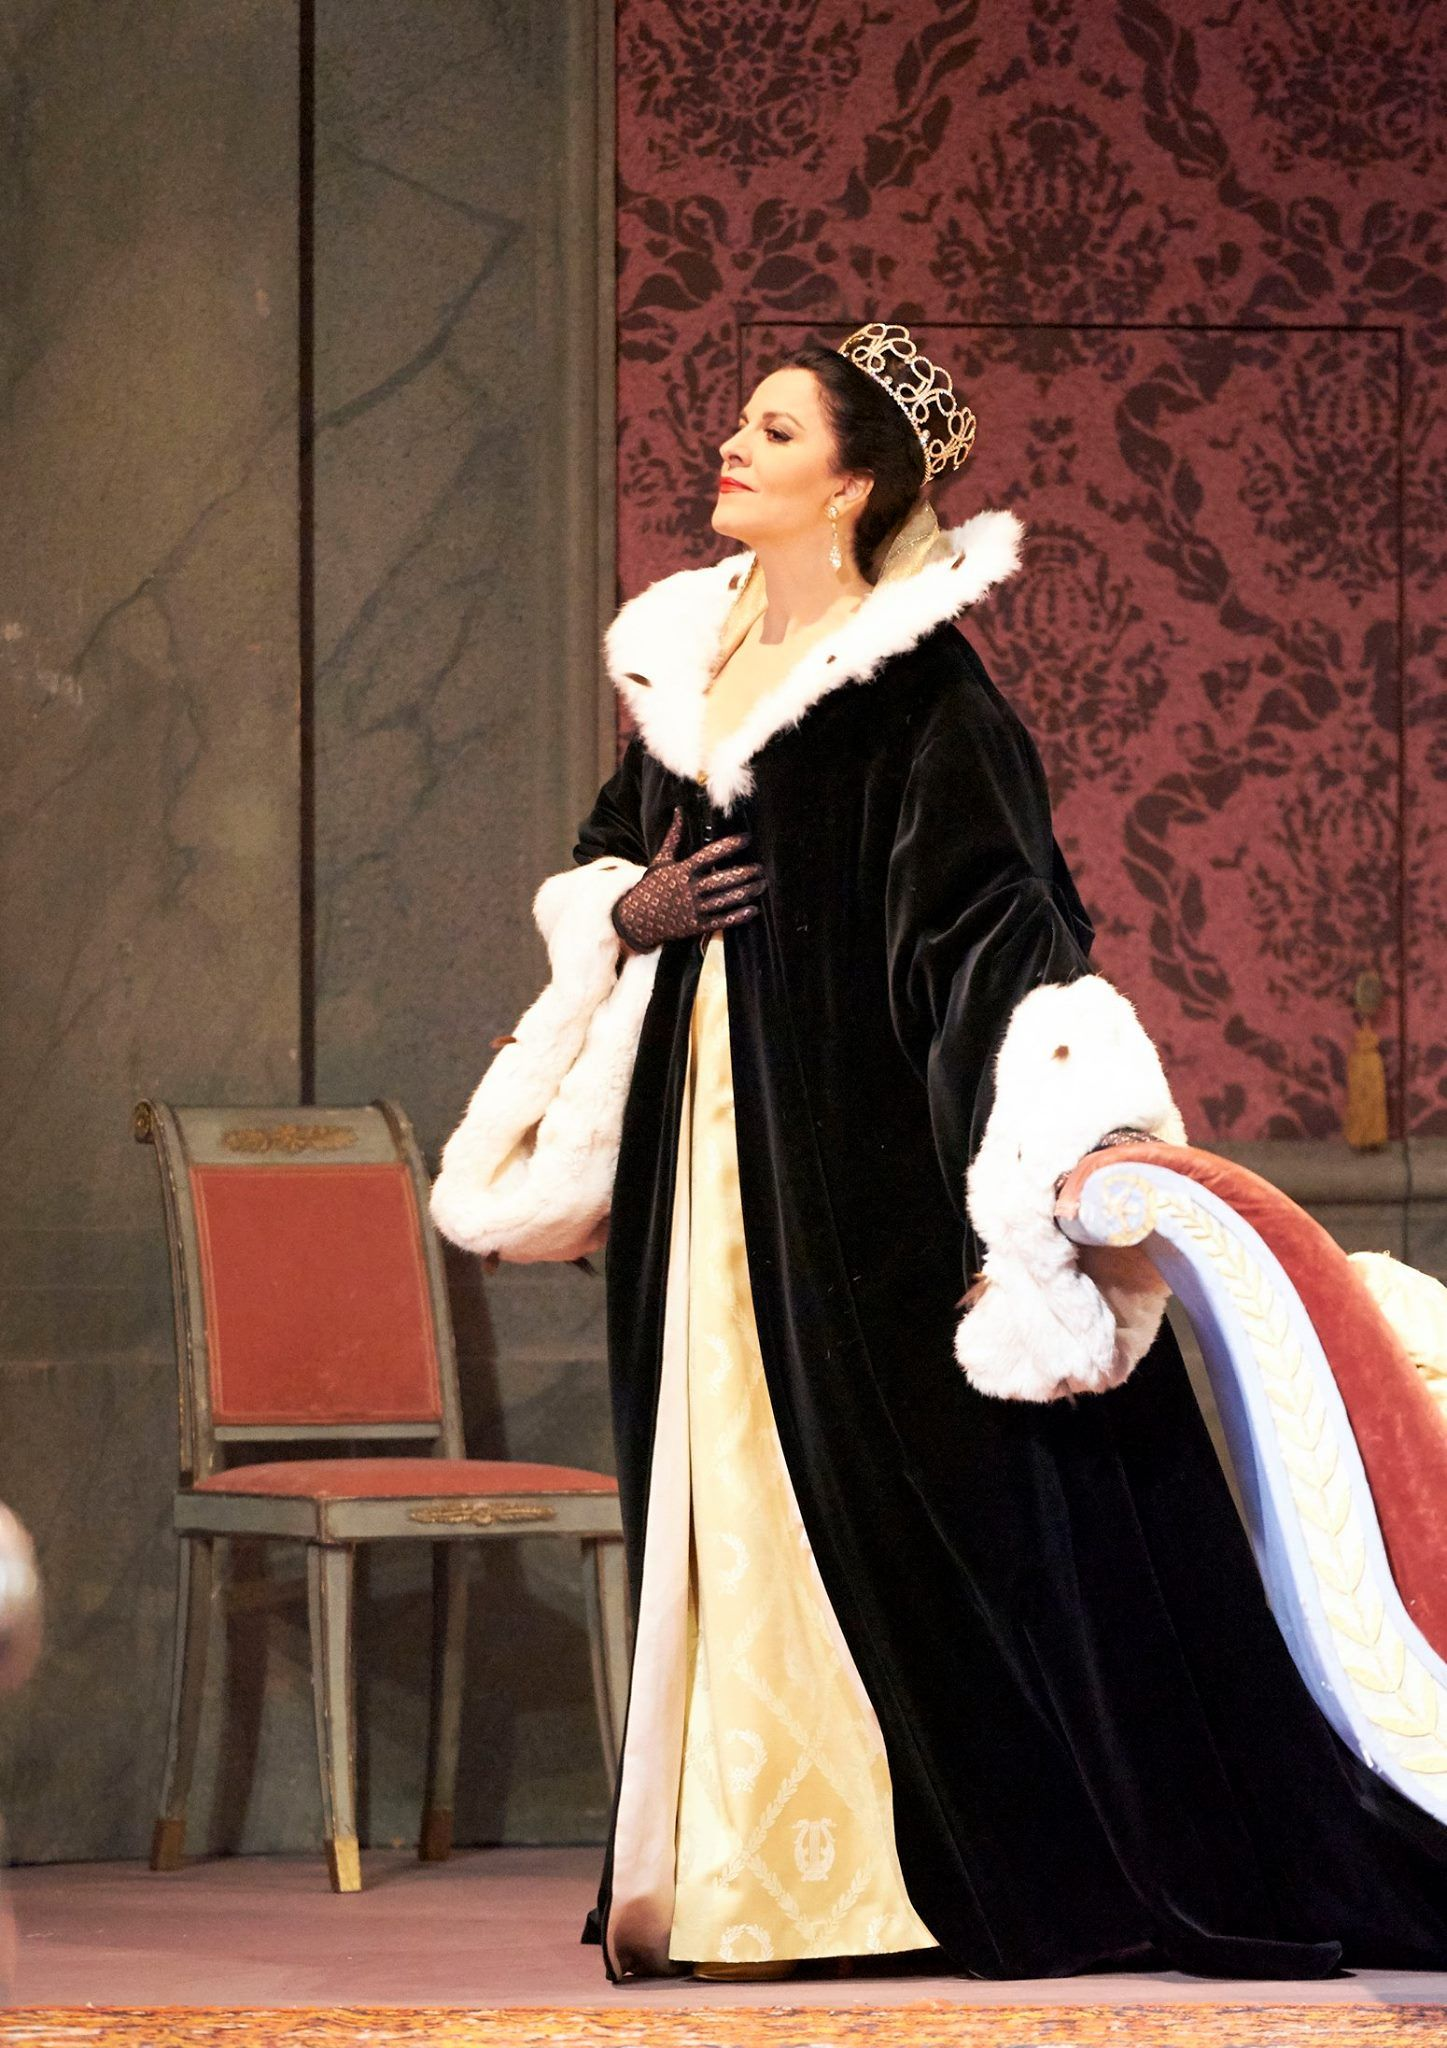 Angela Gheorghiu as Floria Tosca from Puccini's opera 'Tosca' at the Wiener Staatsoper